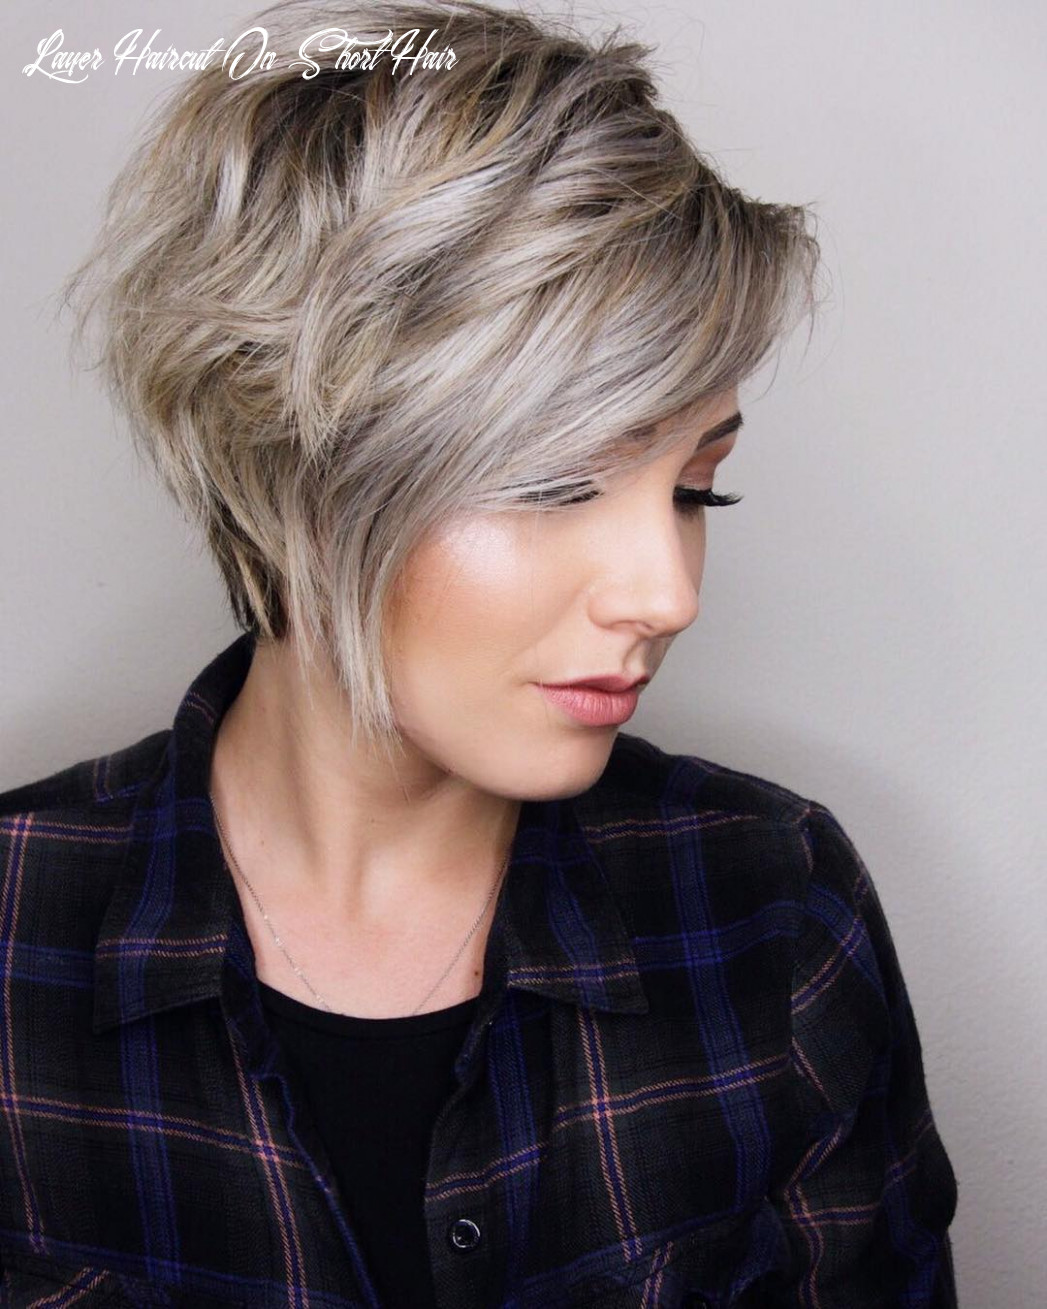 12 Trendy Layered Short Haircut Ideas 12 - 'Extra Special ...